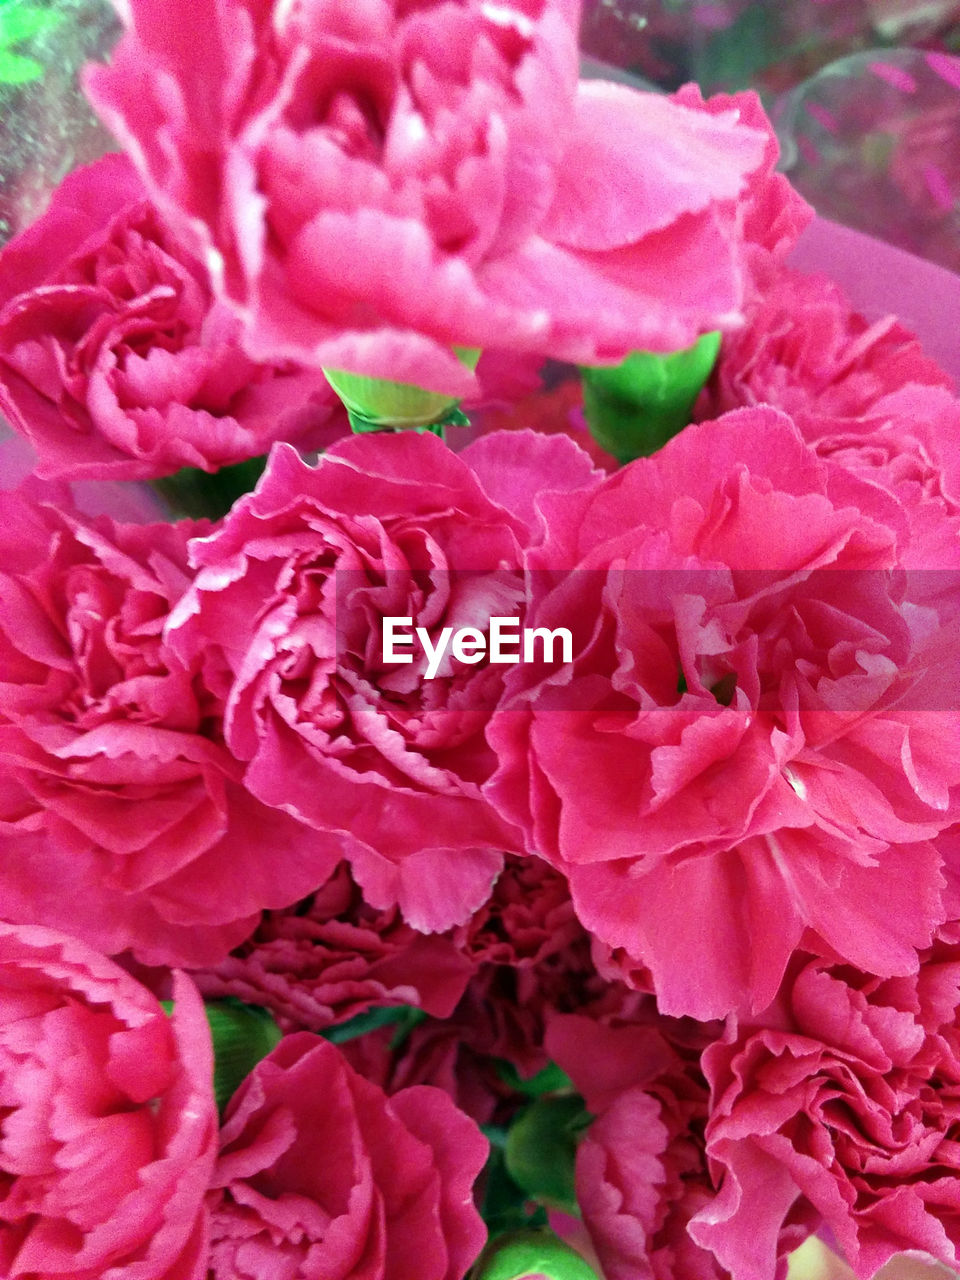 flower, pink color, petal, no people, nature, flower head, fragility, beauty in nature, plant, freshness, rose - flower, outdoors, close-up, day, full frame, backgrounds, peony